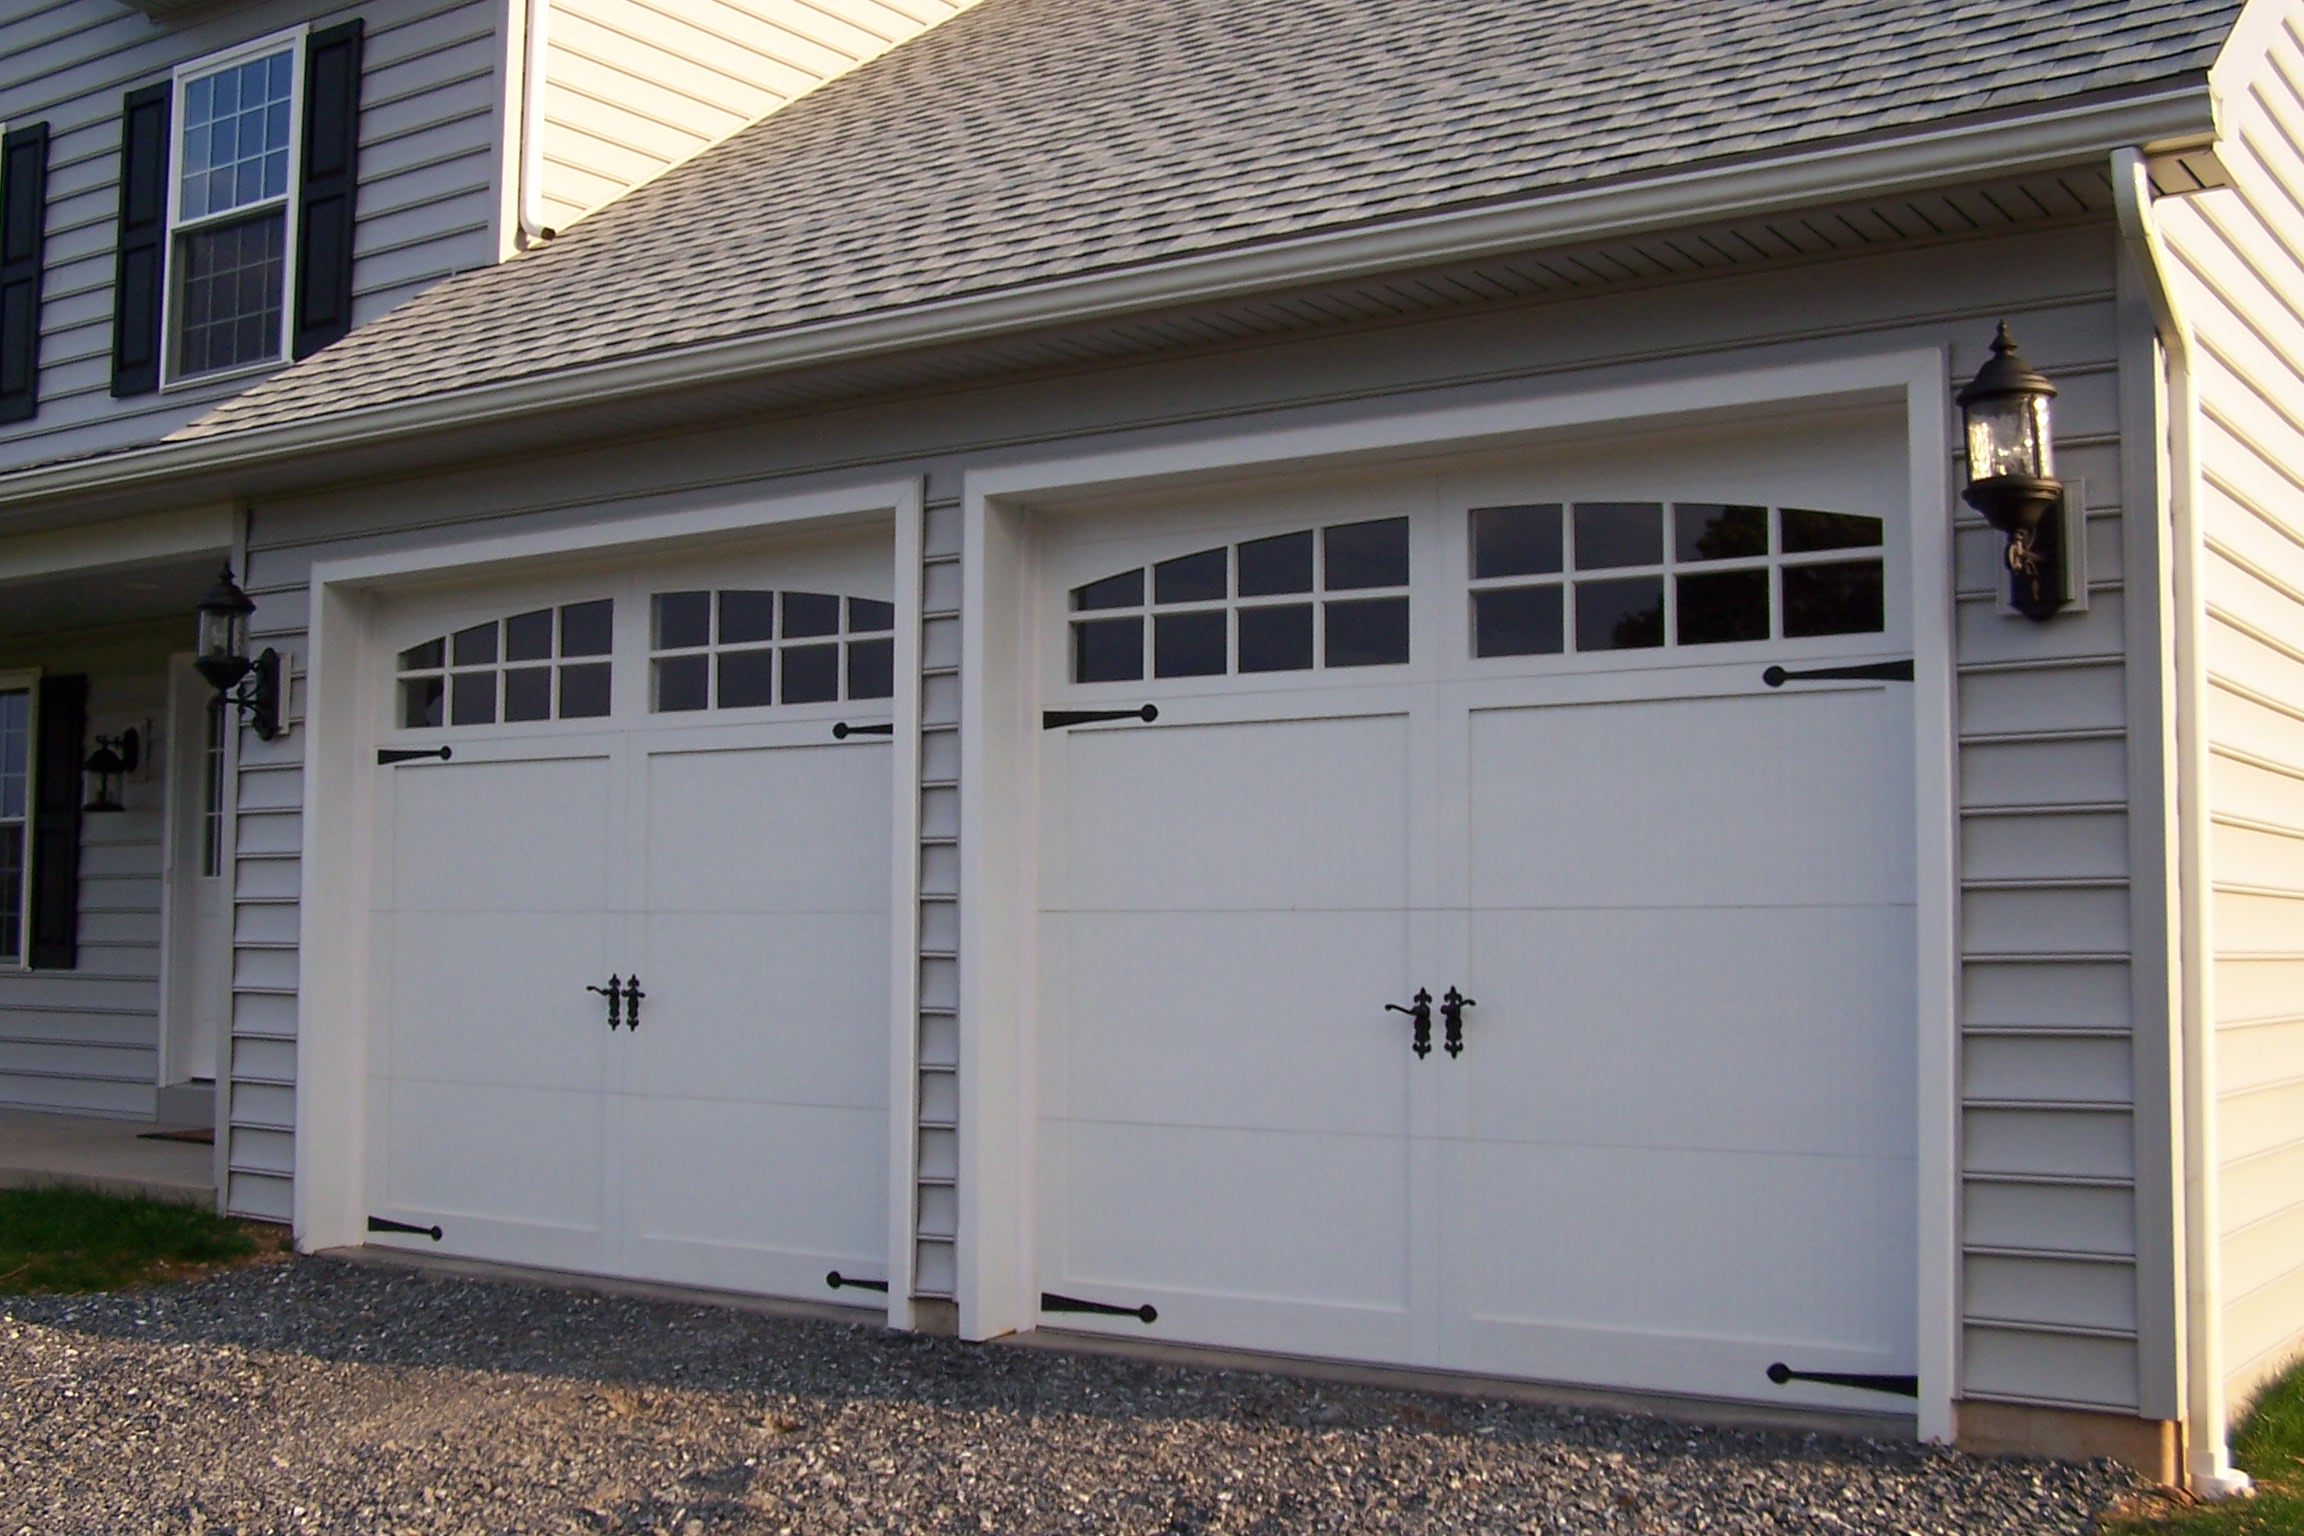 File:Sectional Type Overhead Garage Door.JPG